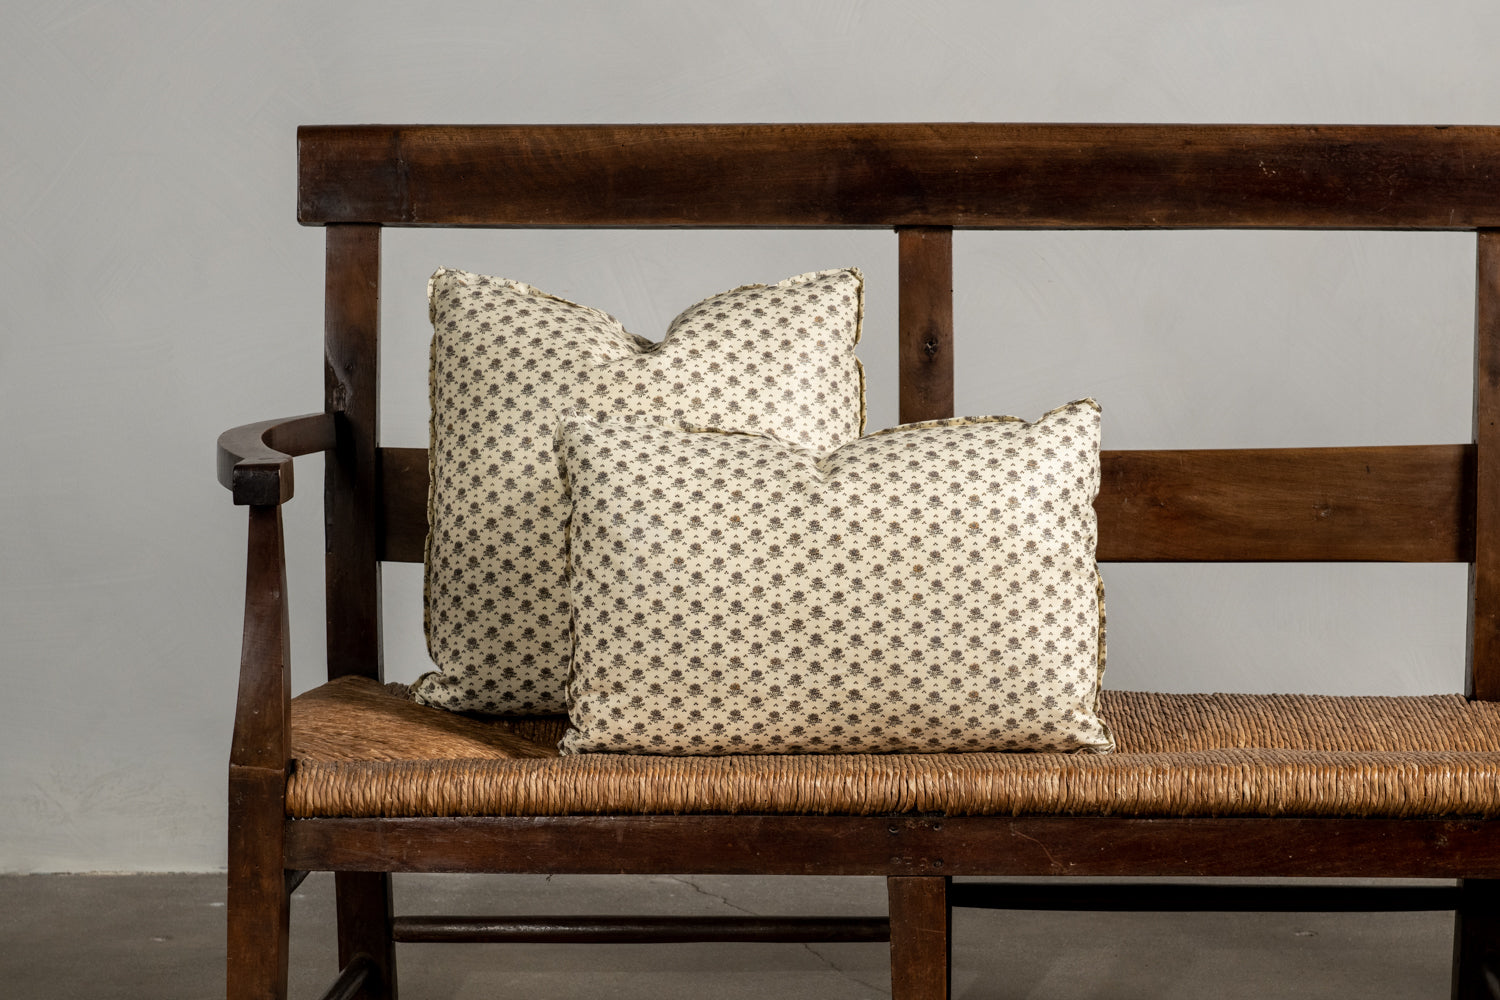 Two Littleweed Linen Nickey Kehoe Collection Pillows on a bench.